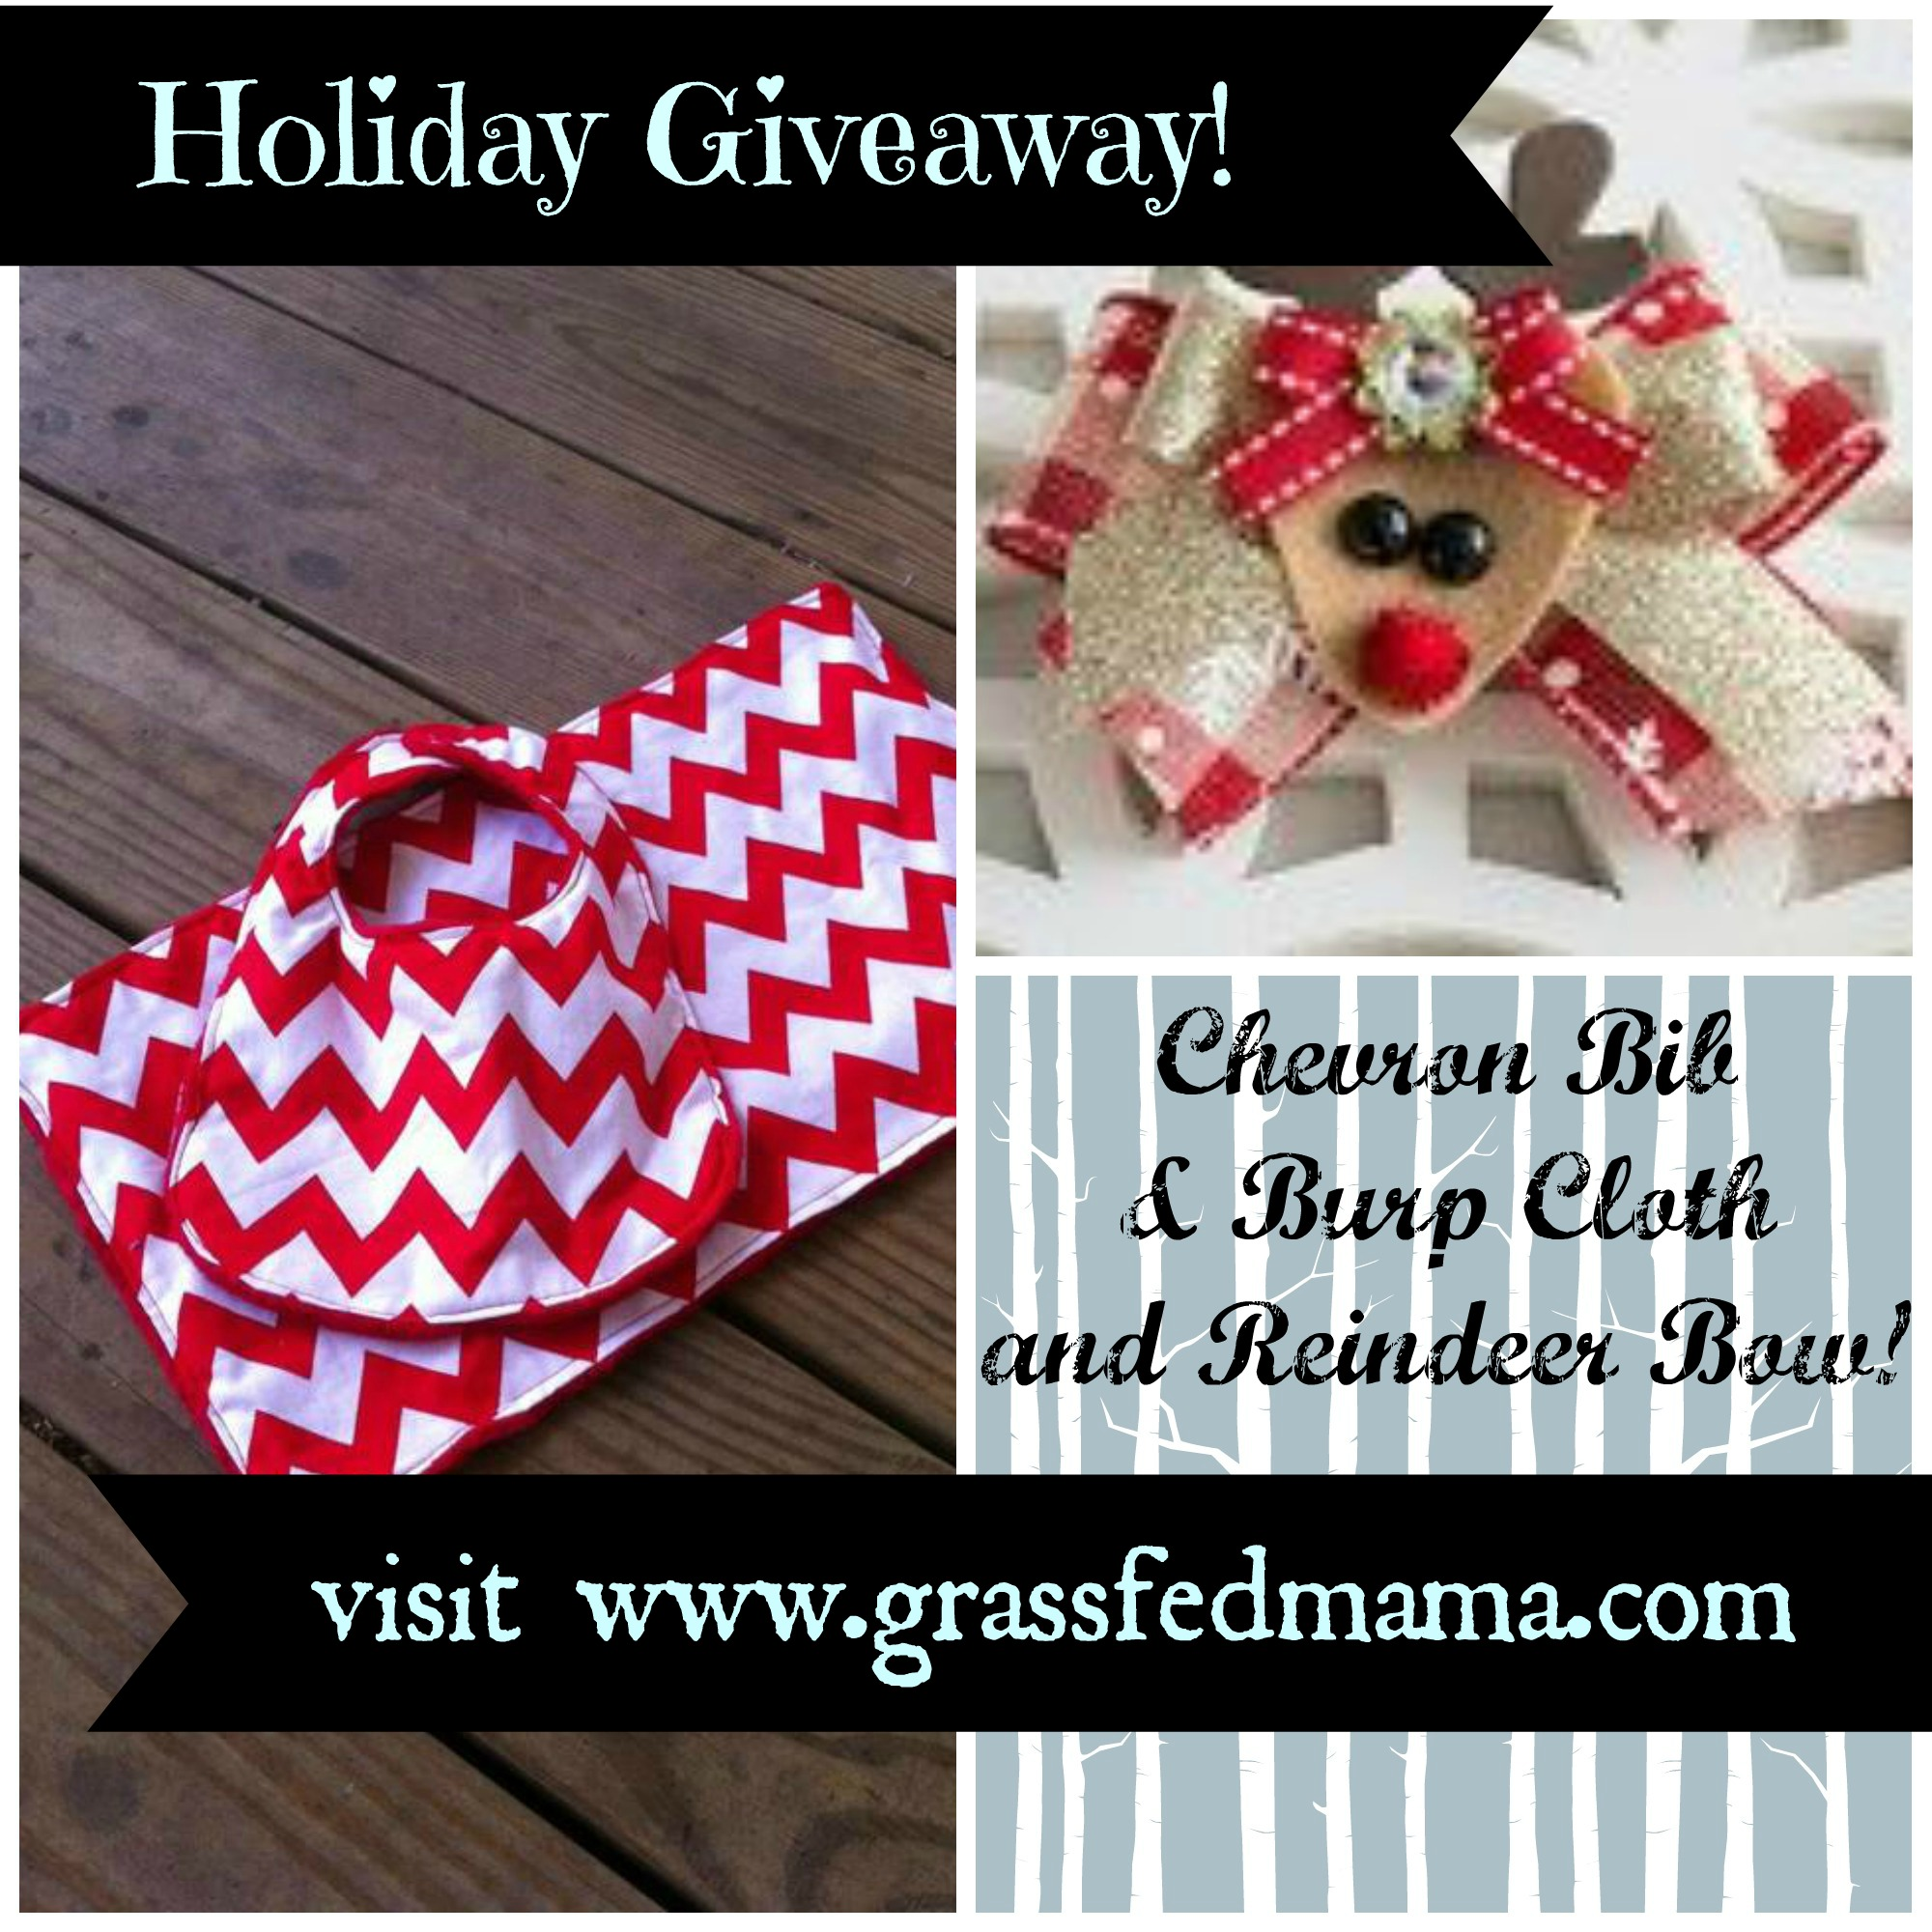 Holiday Giveaway Grassfedmama.com